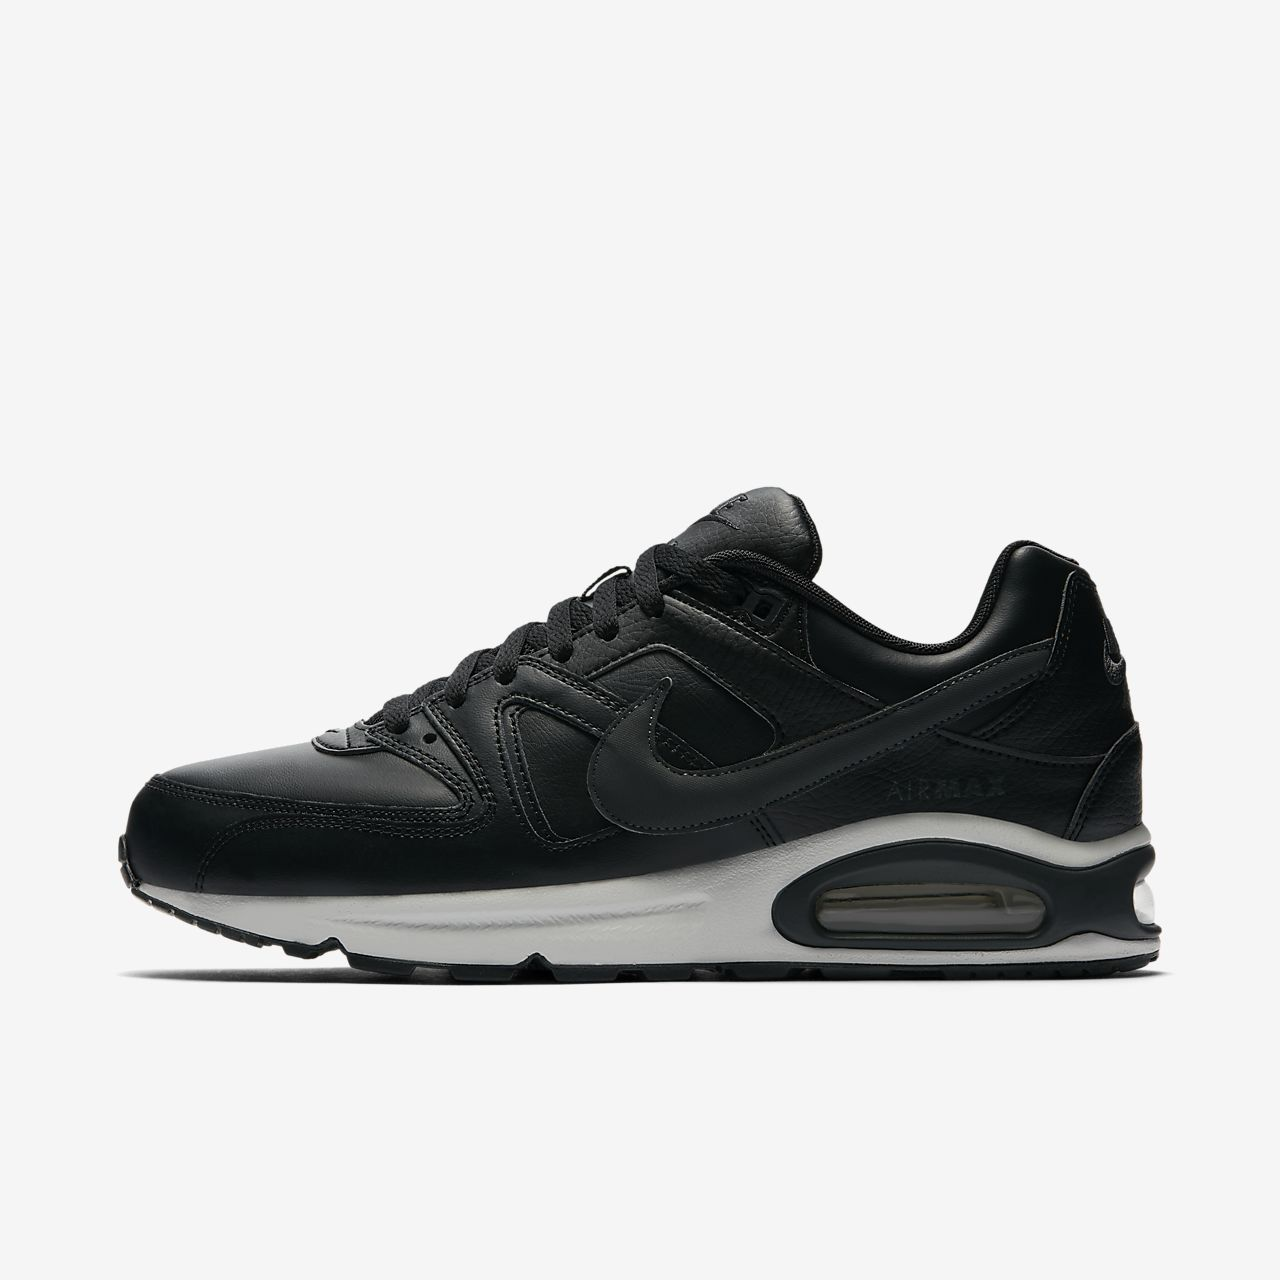 sneakers for cheap f4ad4 e4c23 ... Chaussure Nike Air Max Command pour Homme